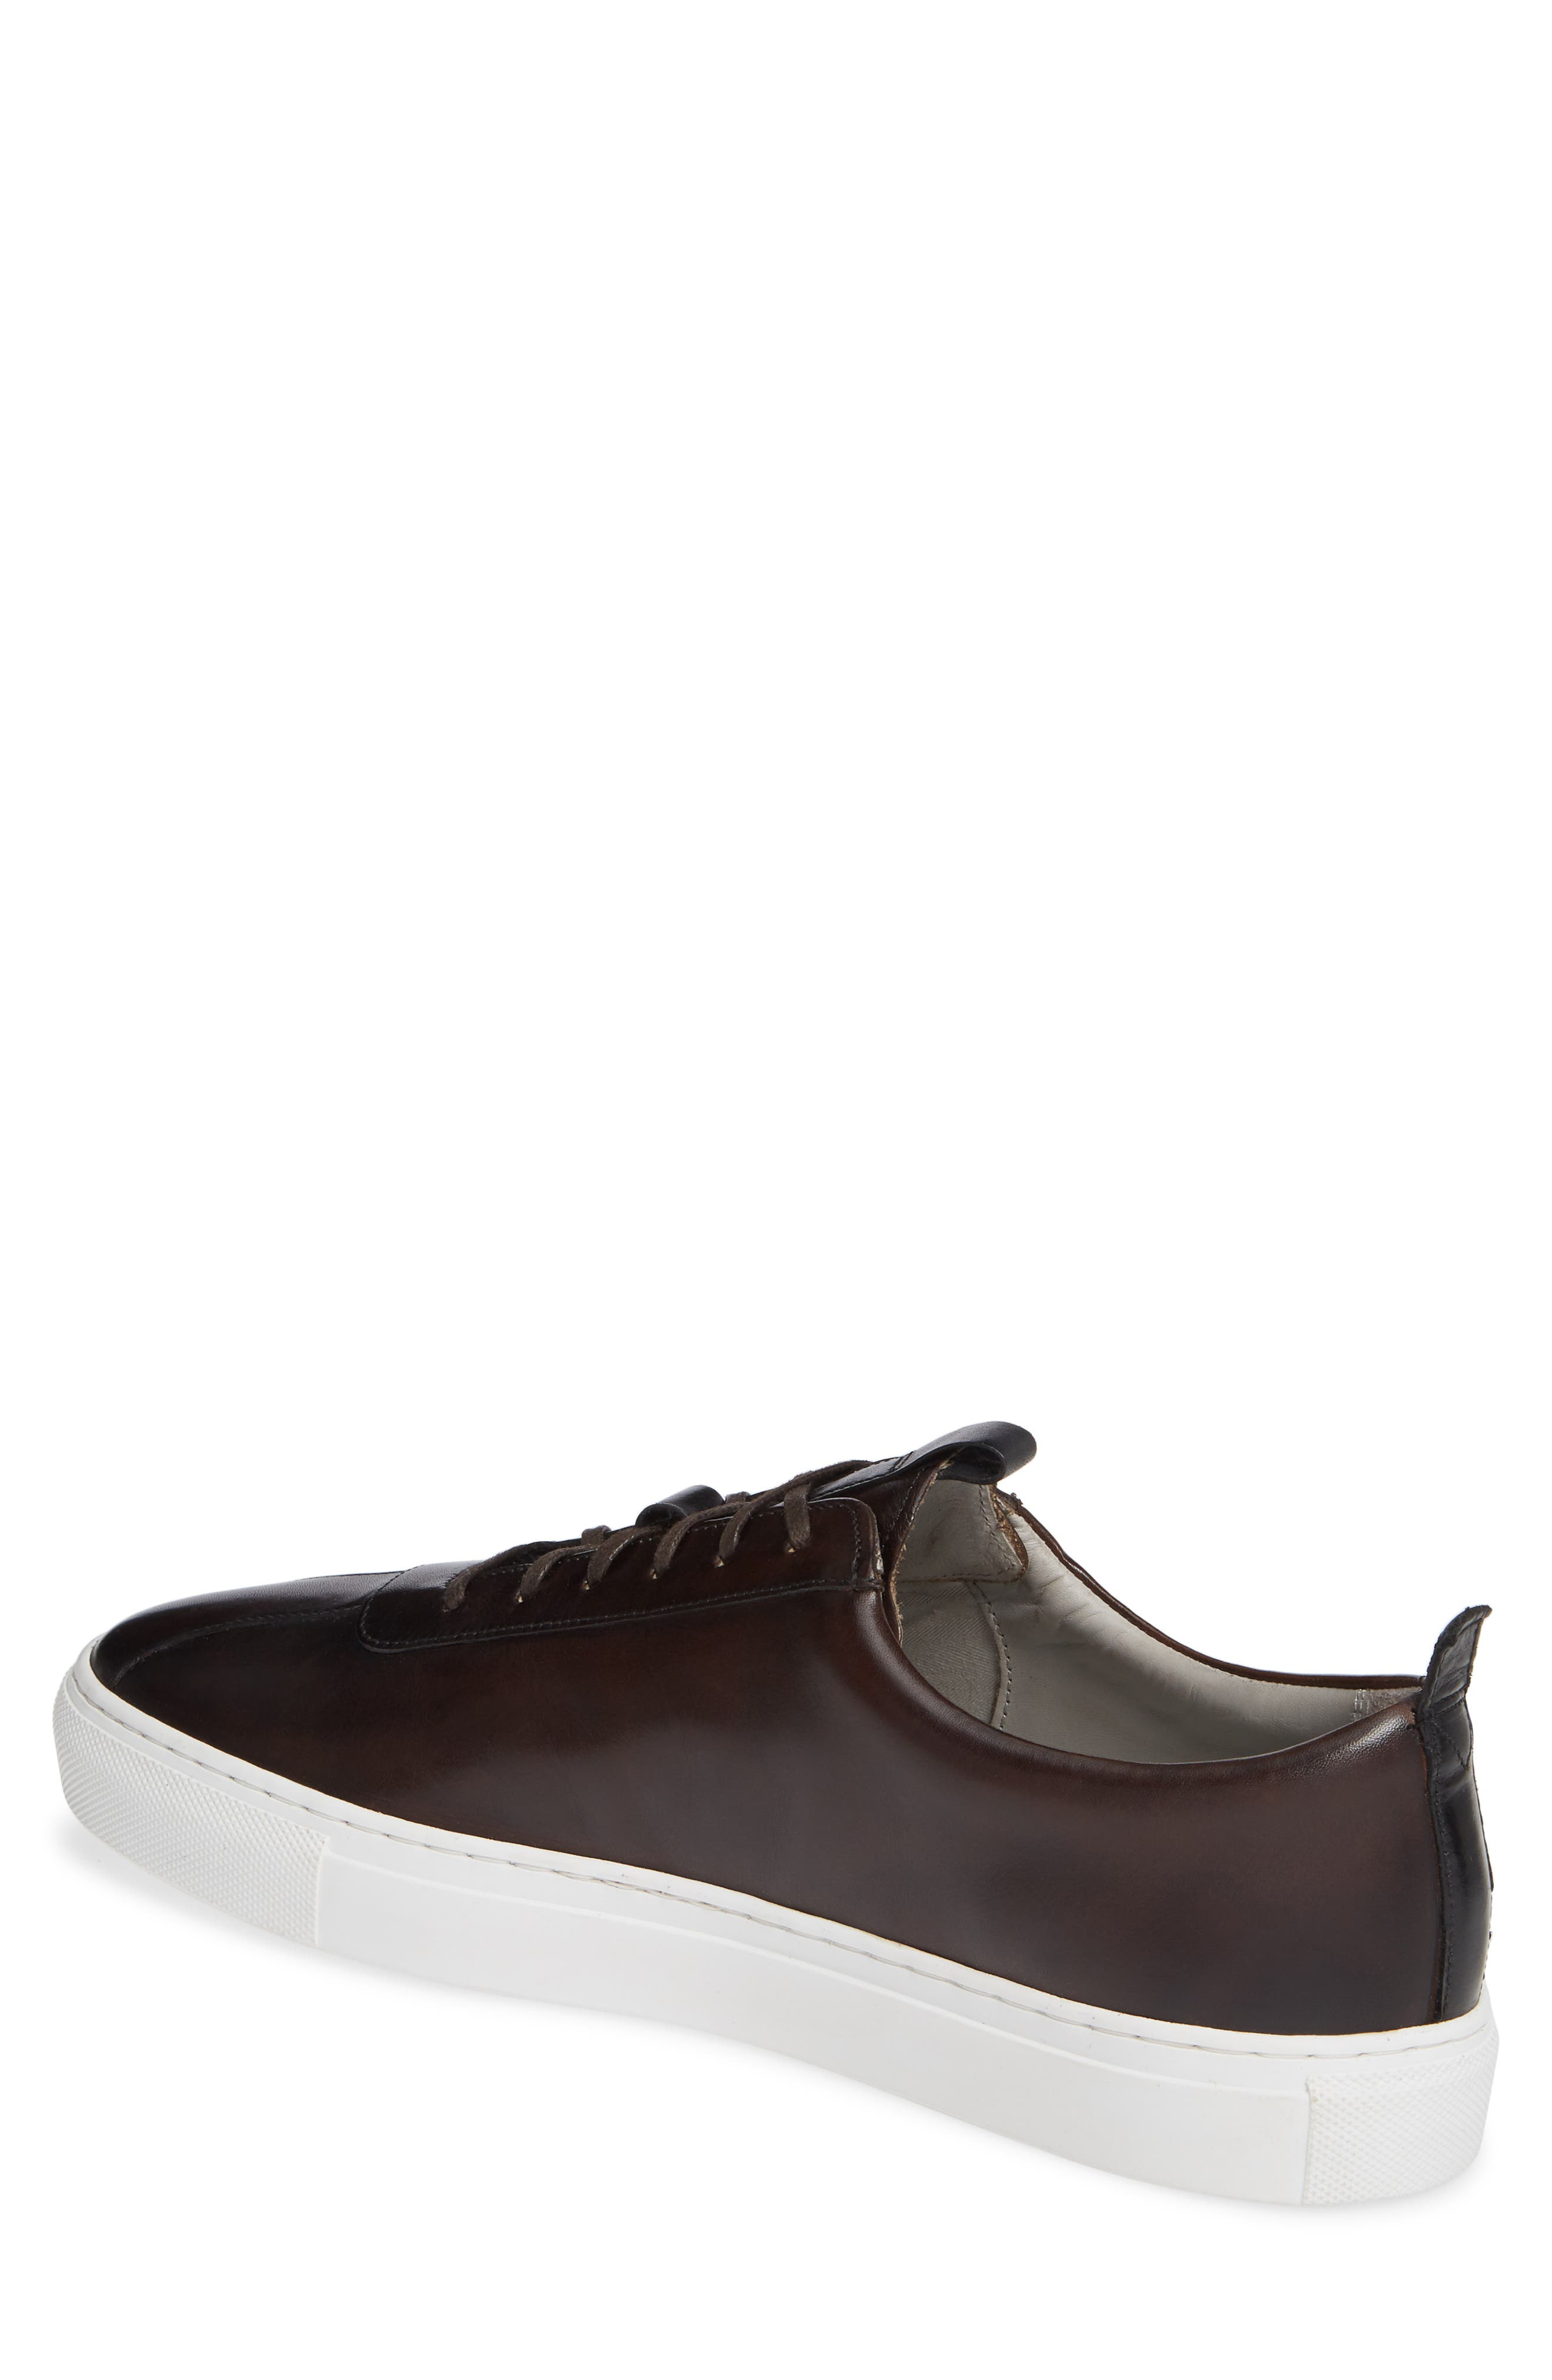 GRENSON,                             Low Top Sneaker,                             Alternate thumbnail 2, color,                             BROWN HAND PAINTED